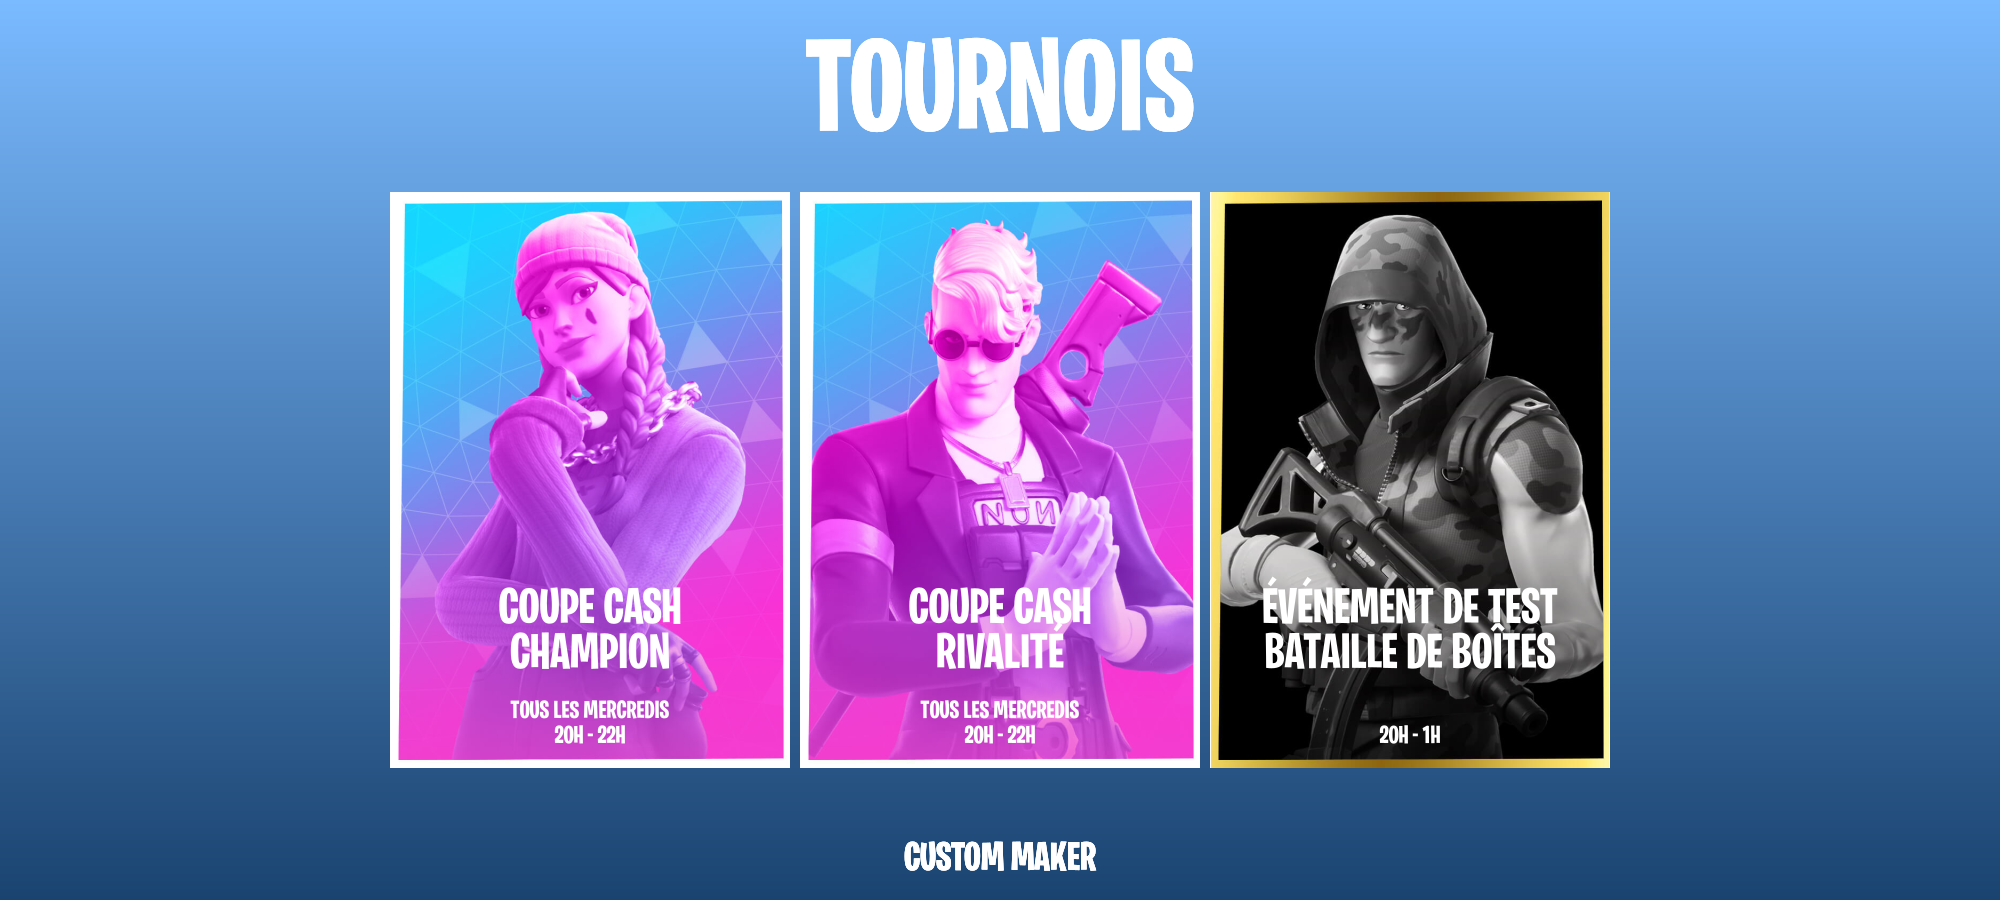 Commande *tournaments